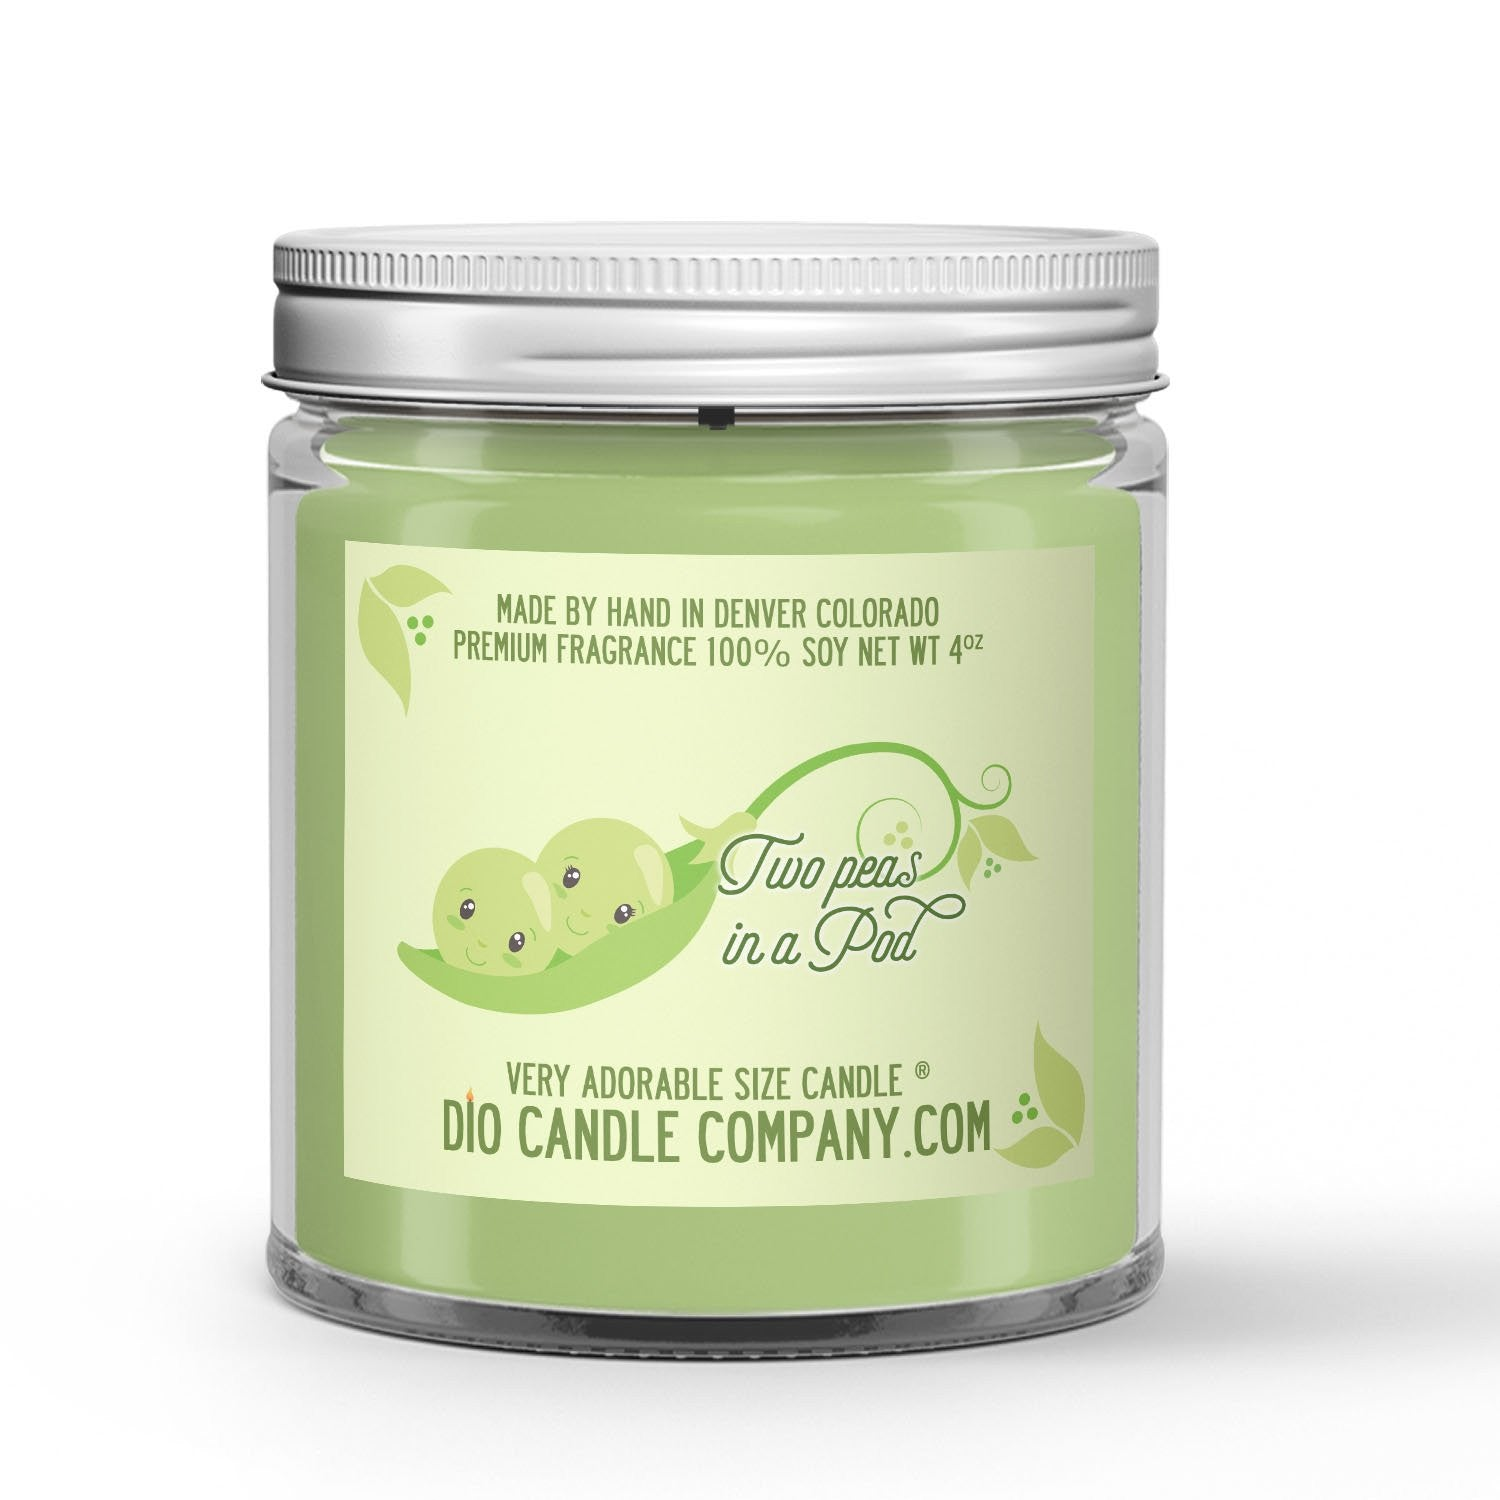 Two Peas in a Pod Candle - Snap Peas - 4oz Very Adorable Size Candle® - Dio Candle Company